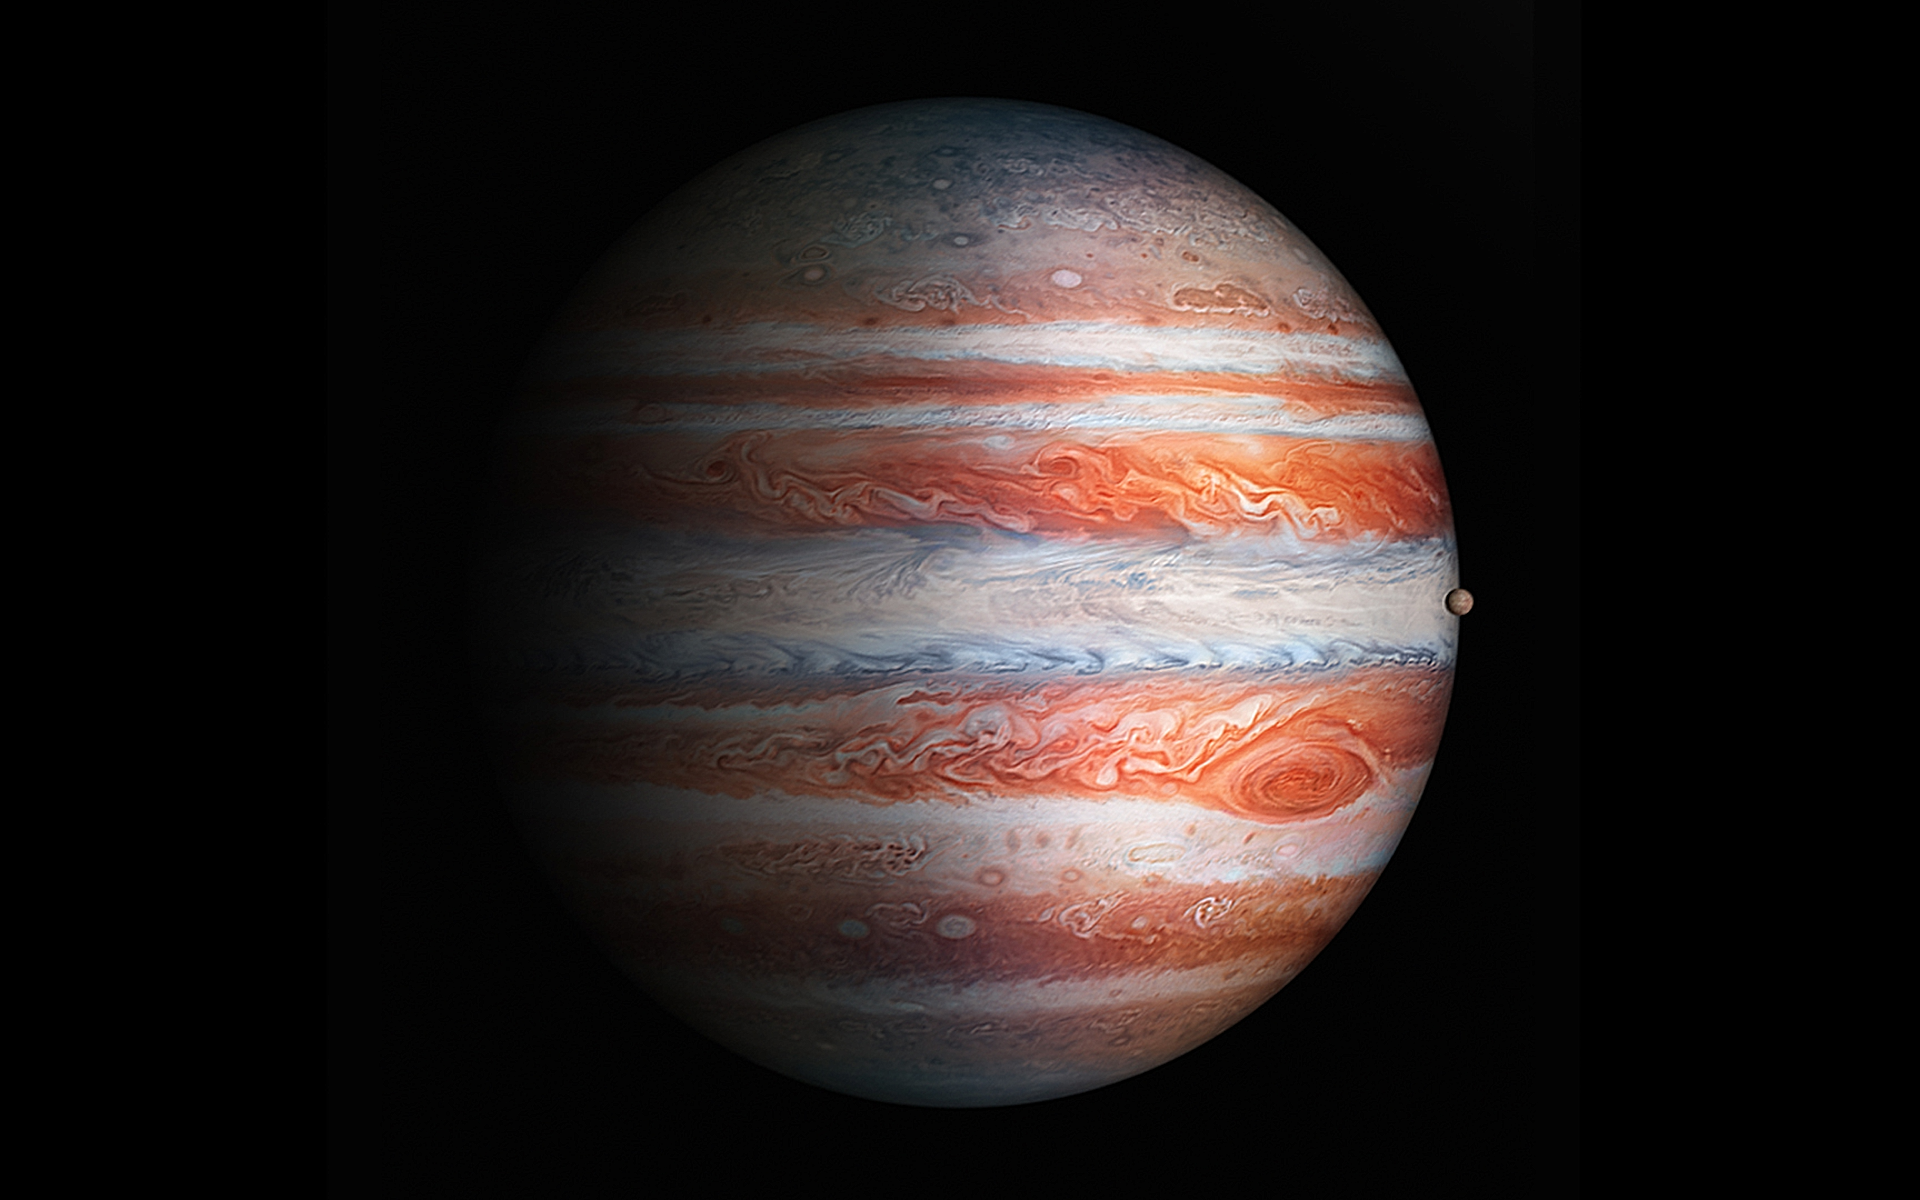 iPad Pro Jupiter Wallpaper Download 1920x1200